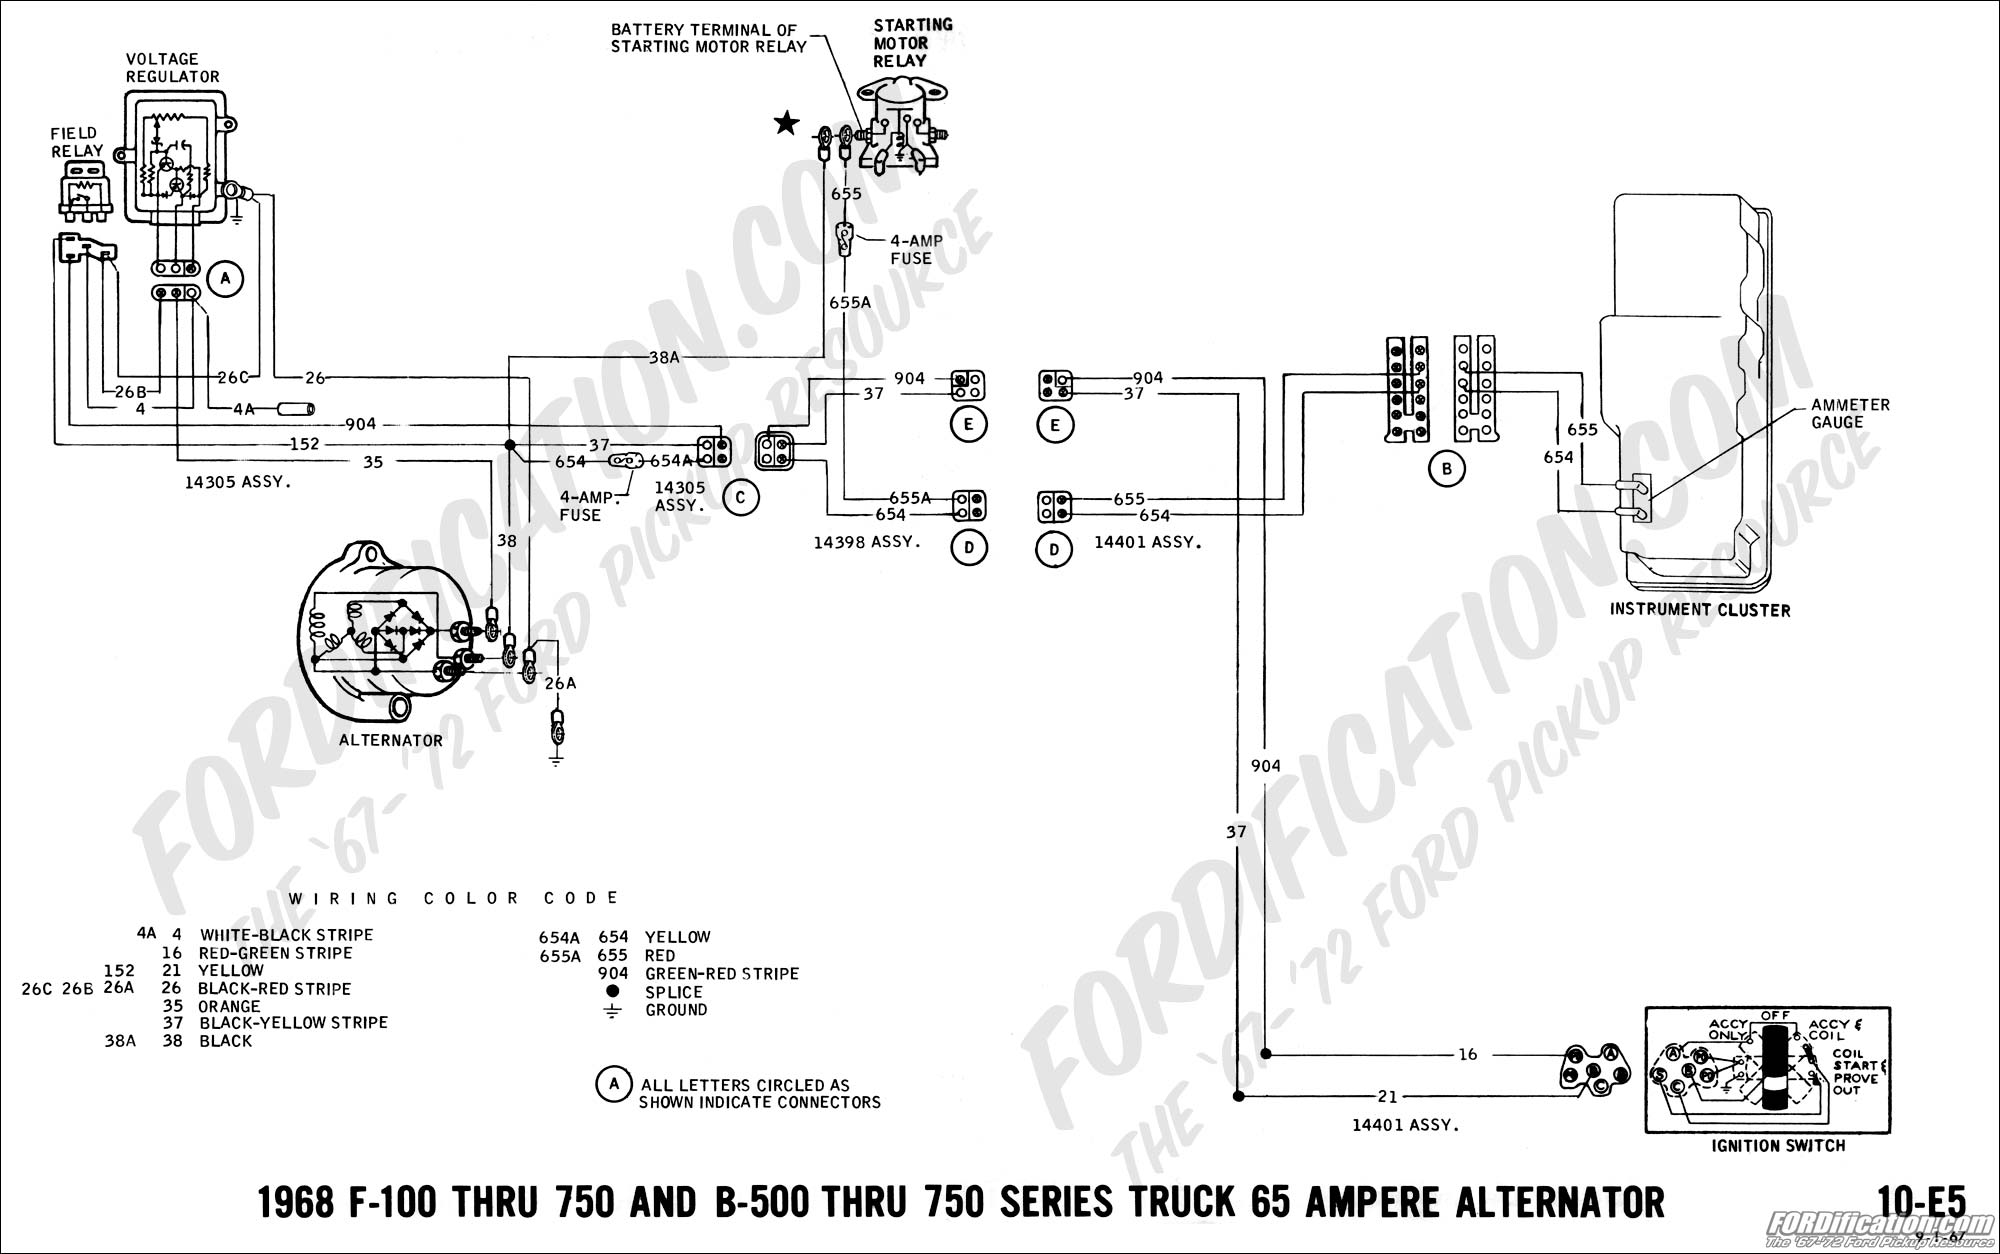 68 07 1968 ford f100 wiring diagram 1965 ford f100 alternator wiring 1965 ford mustang wiring diagrams at mifinder.co